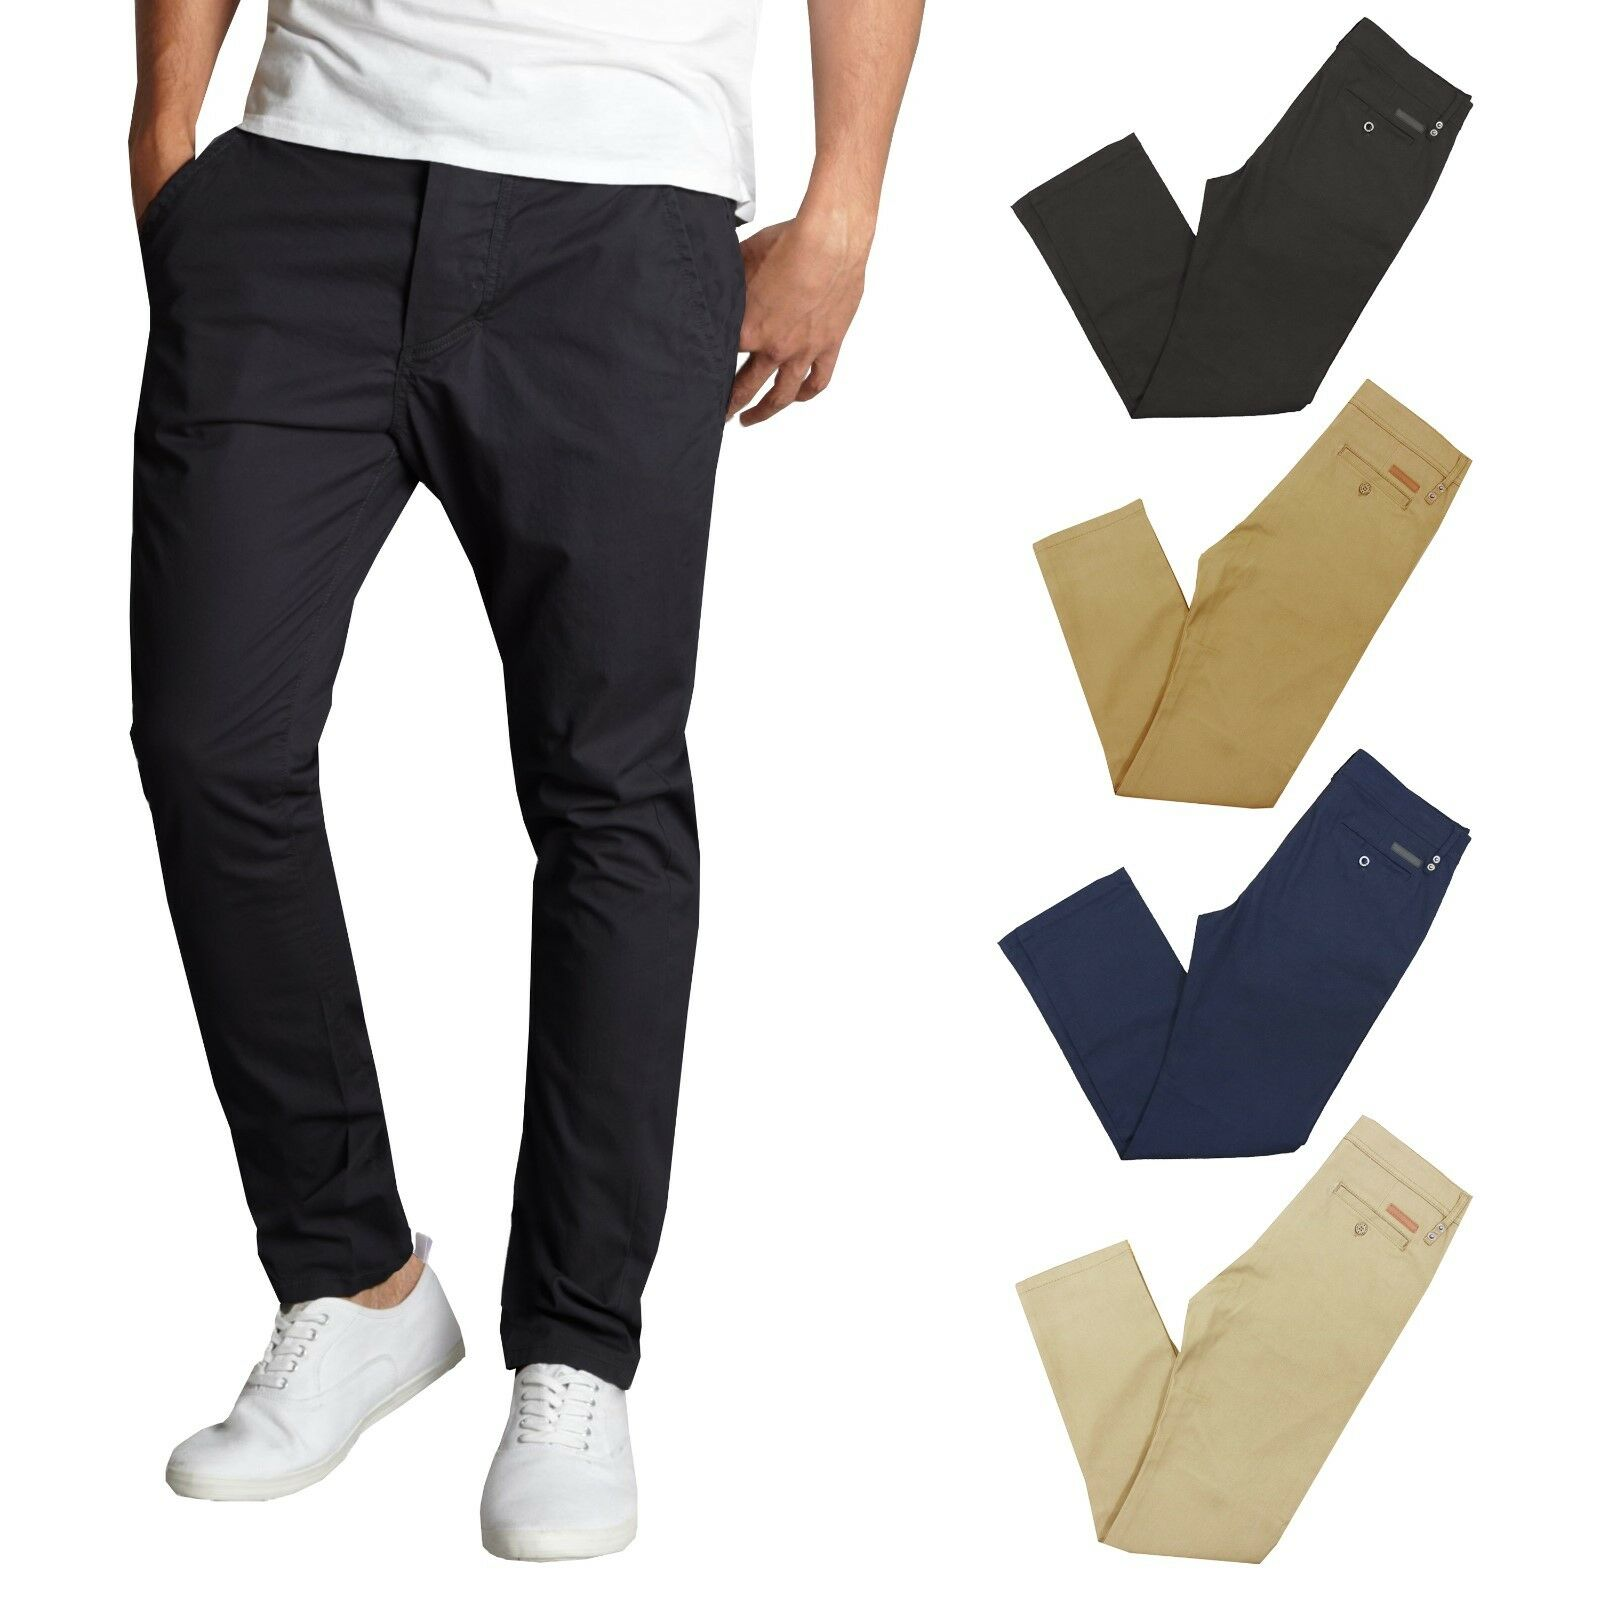 Mens Chino Pants Cotton Stretch Slim Fit Belt Zip Fly Trouser Casual Work School Clothing, Shoes & Accessories